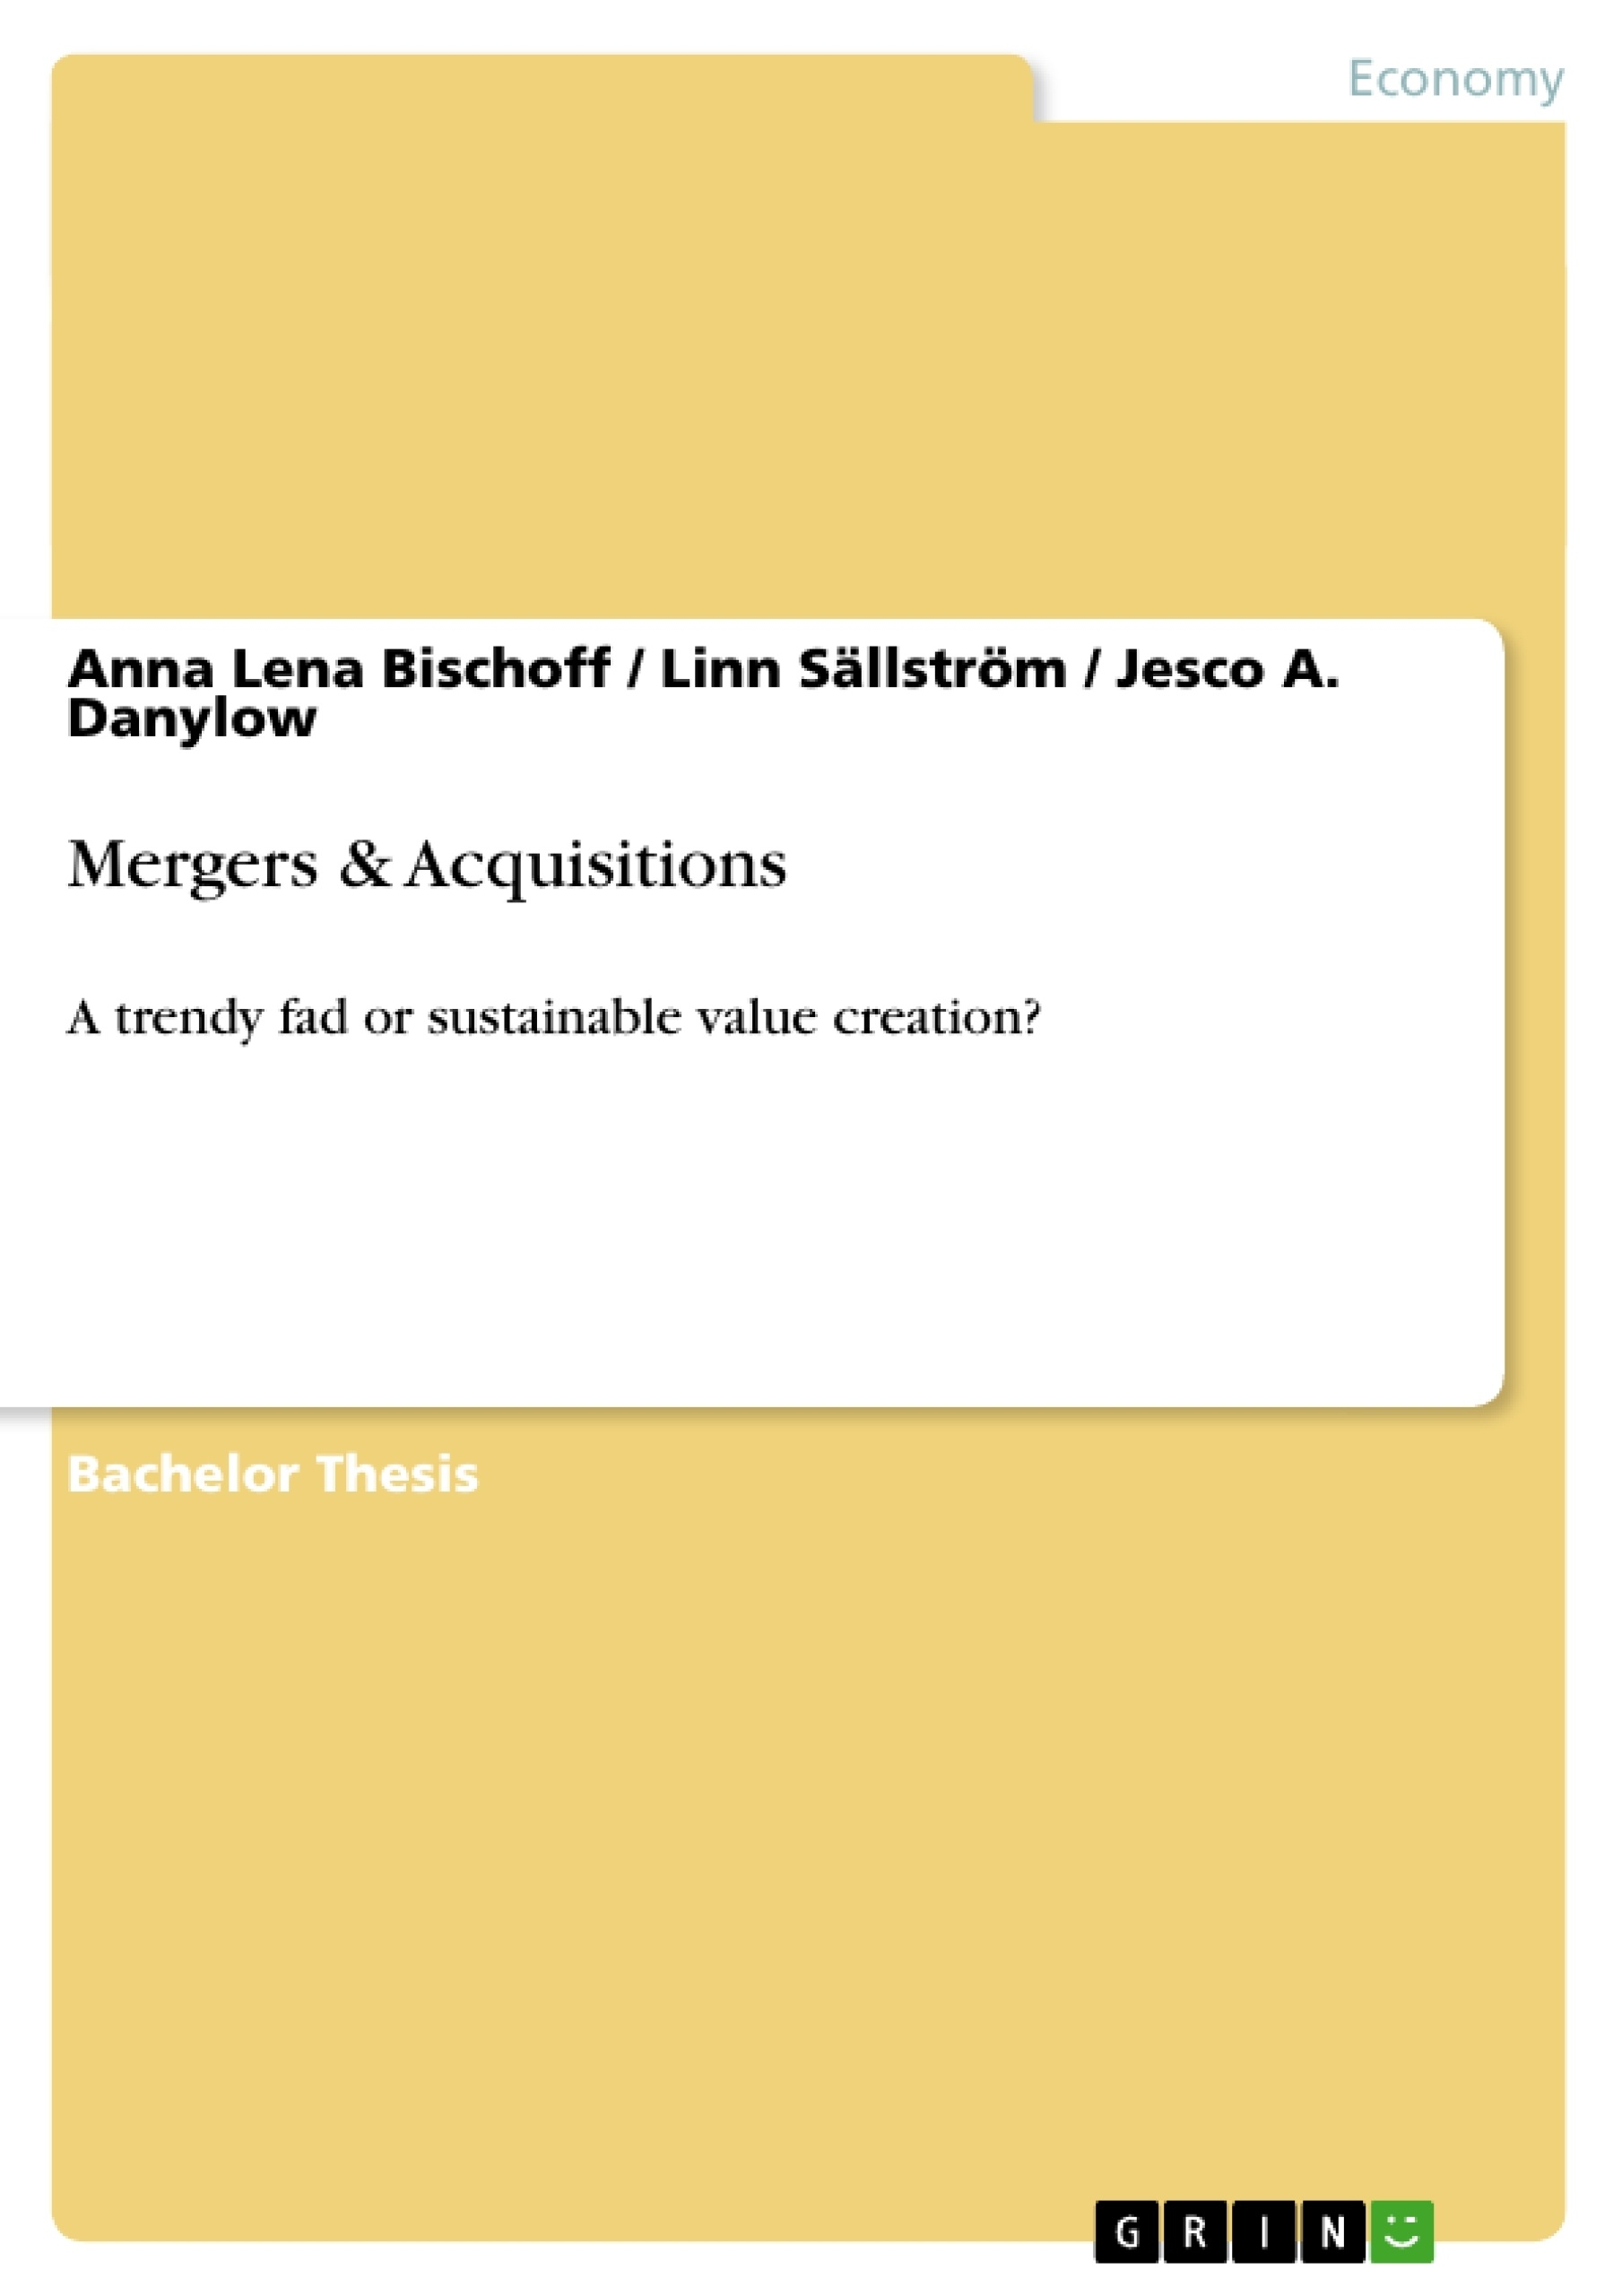 Term paper on mergers